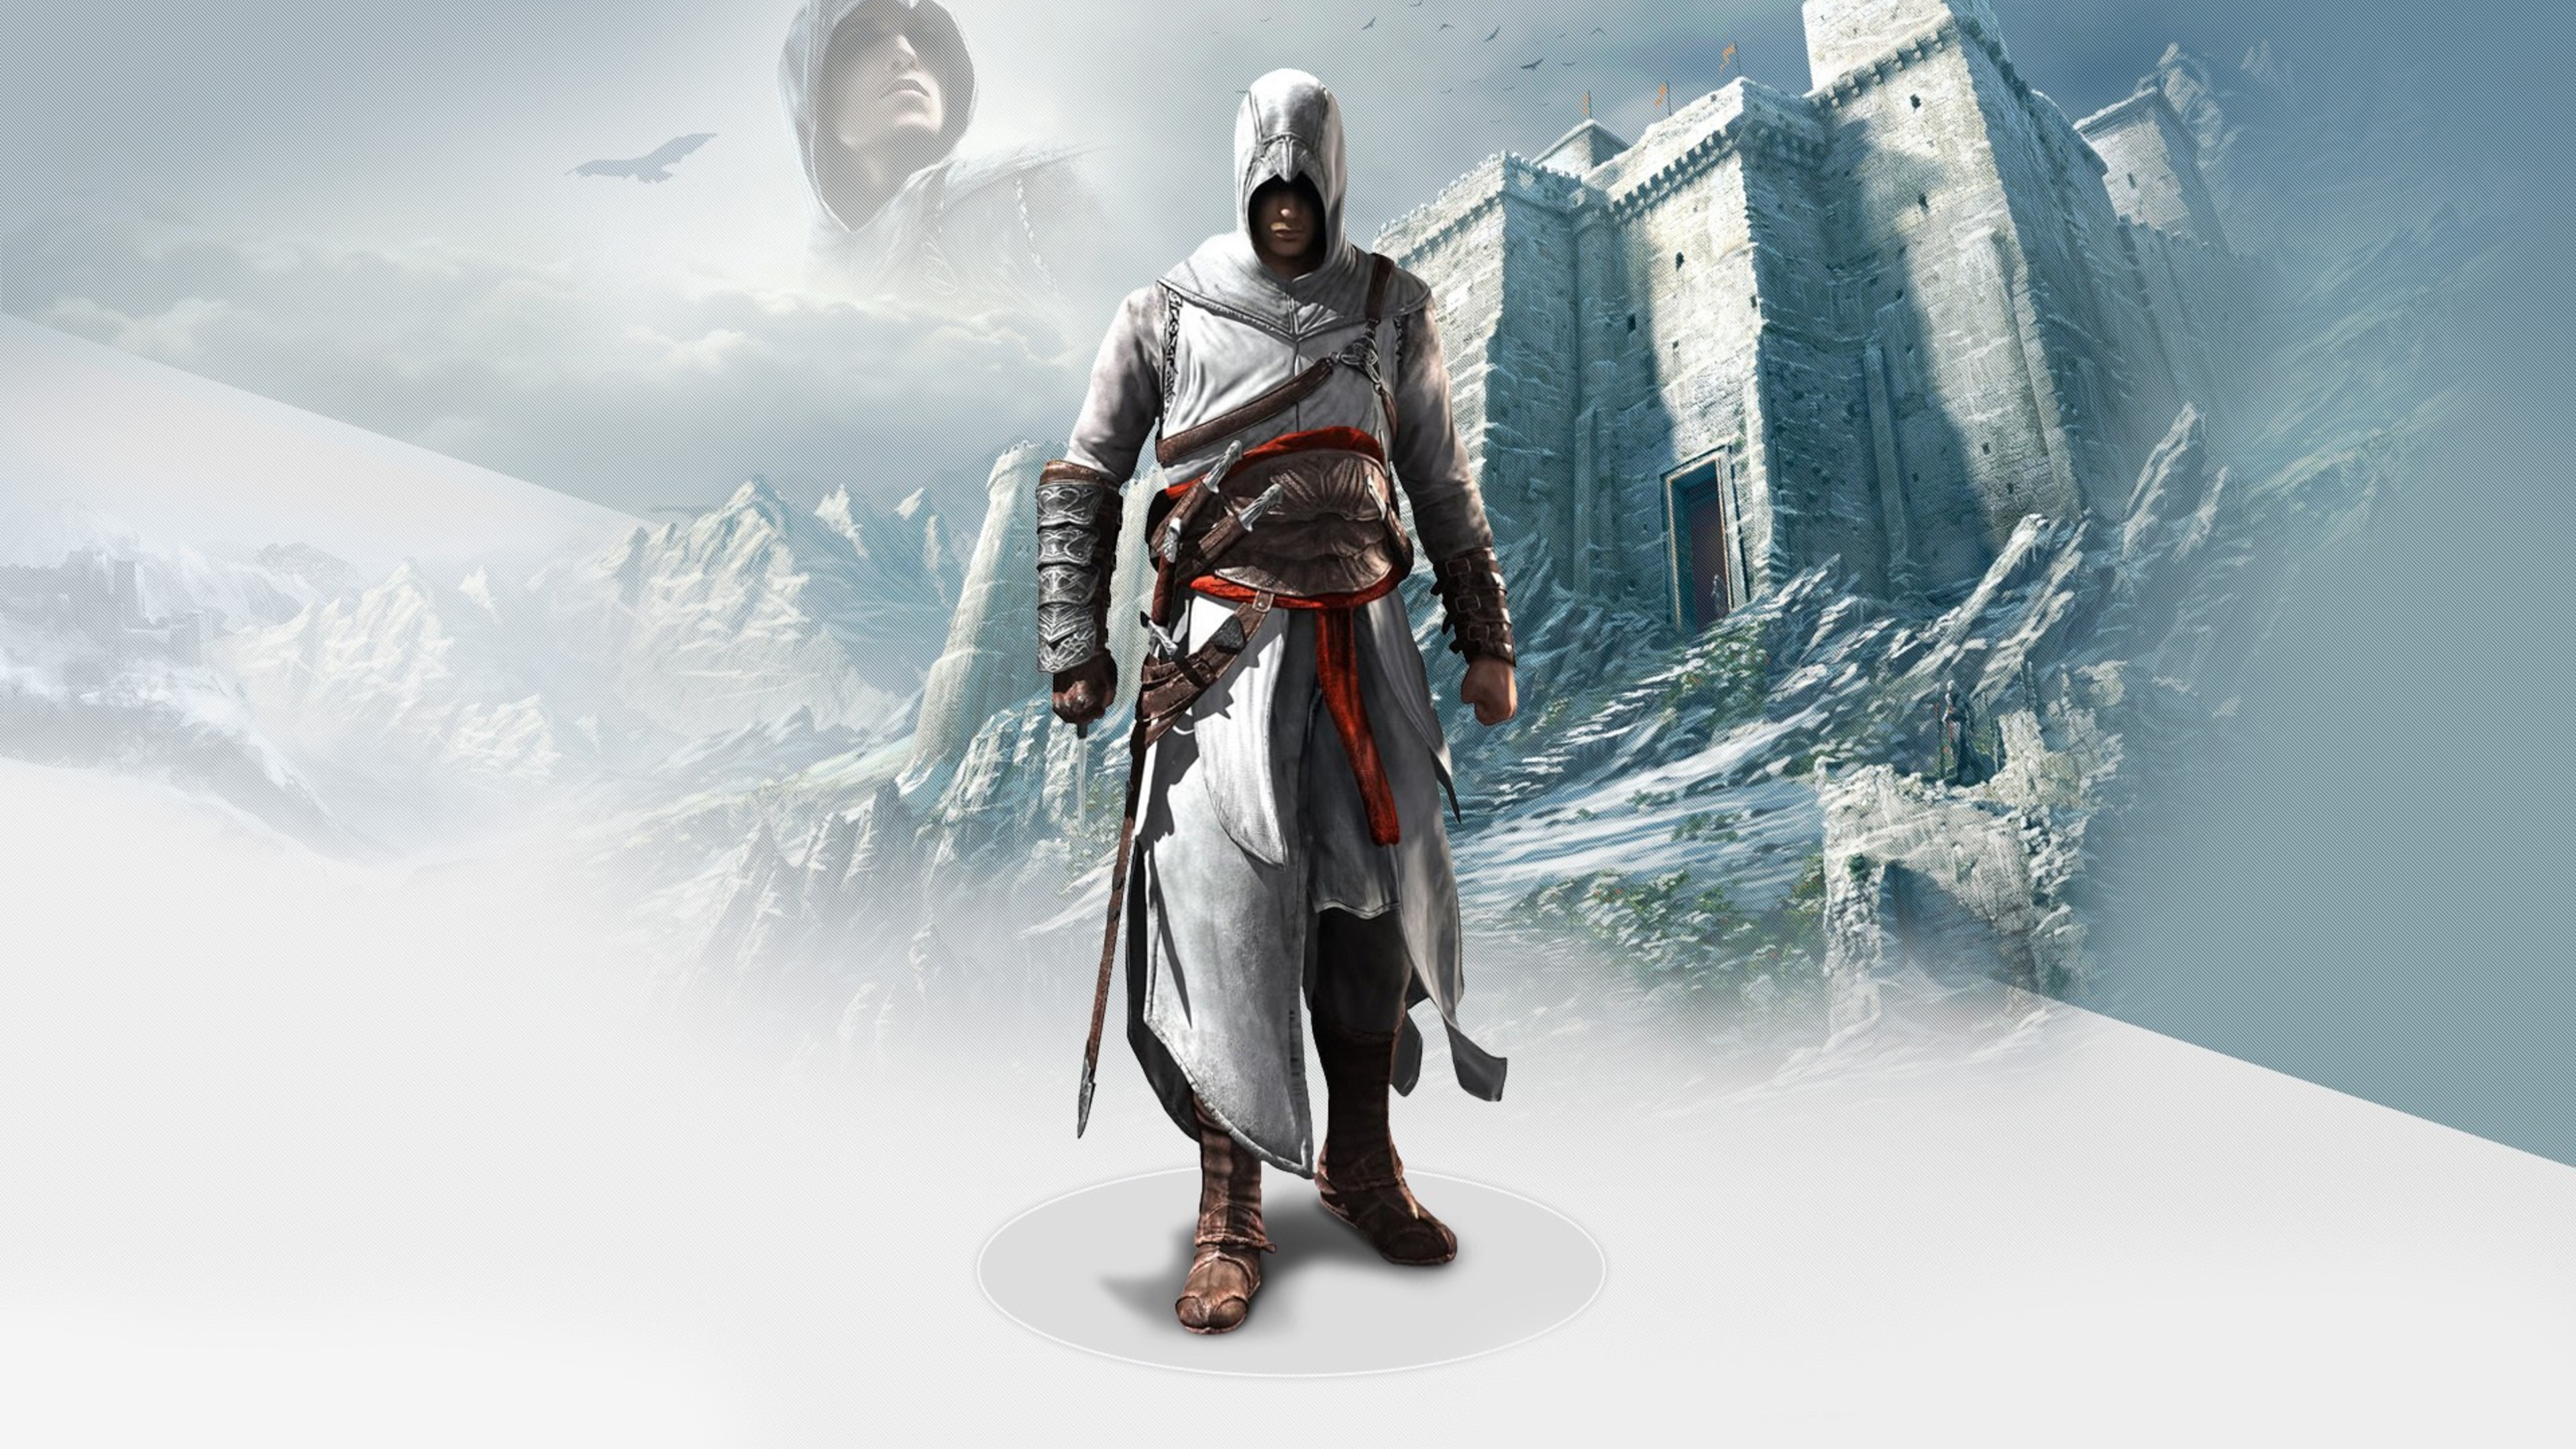 2560x1440 Altair In Assassins Creed 2 1440p Resolution Hd 4k